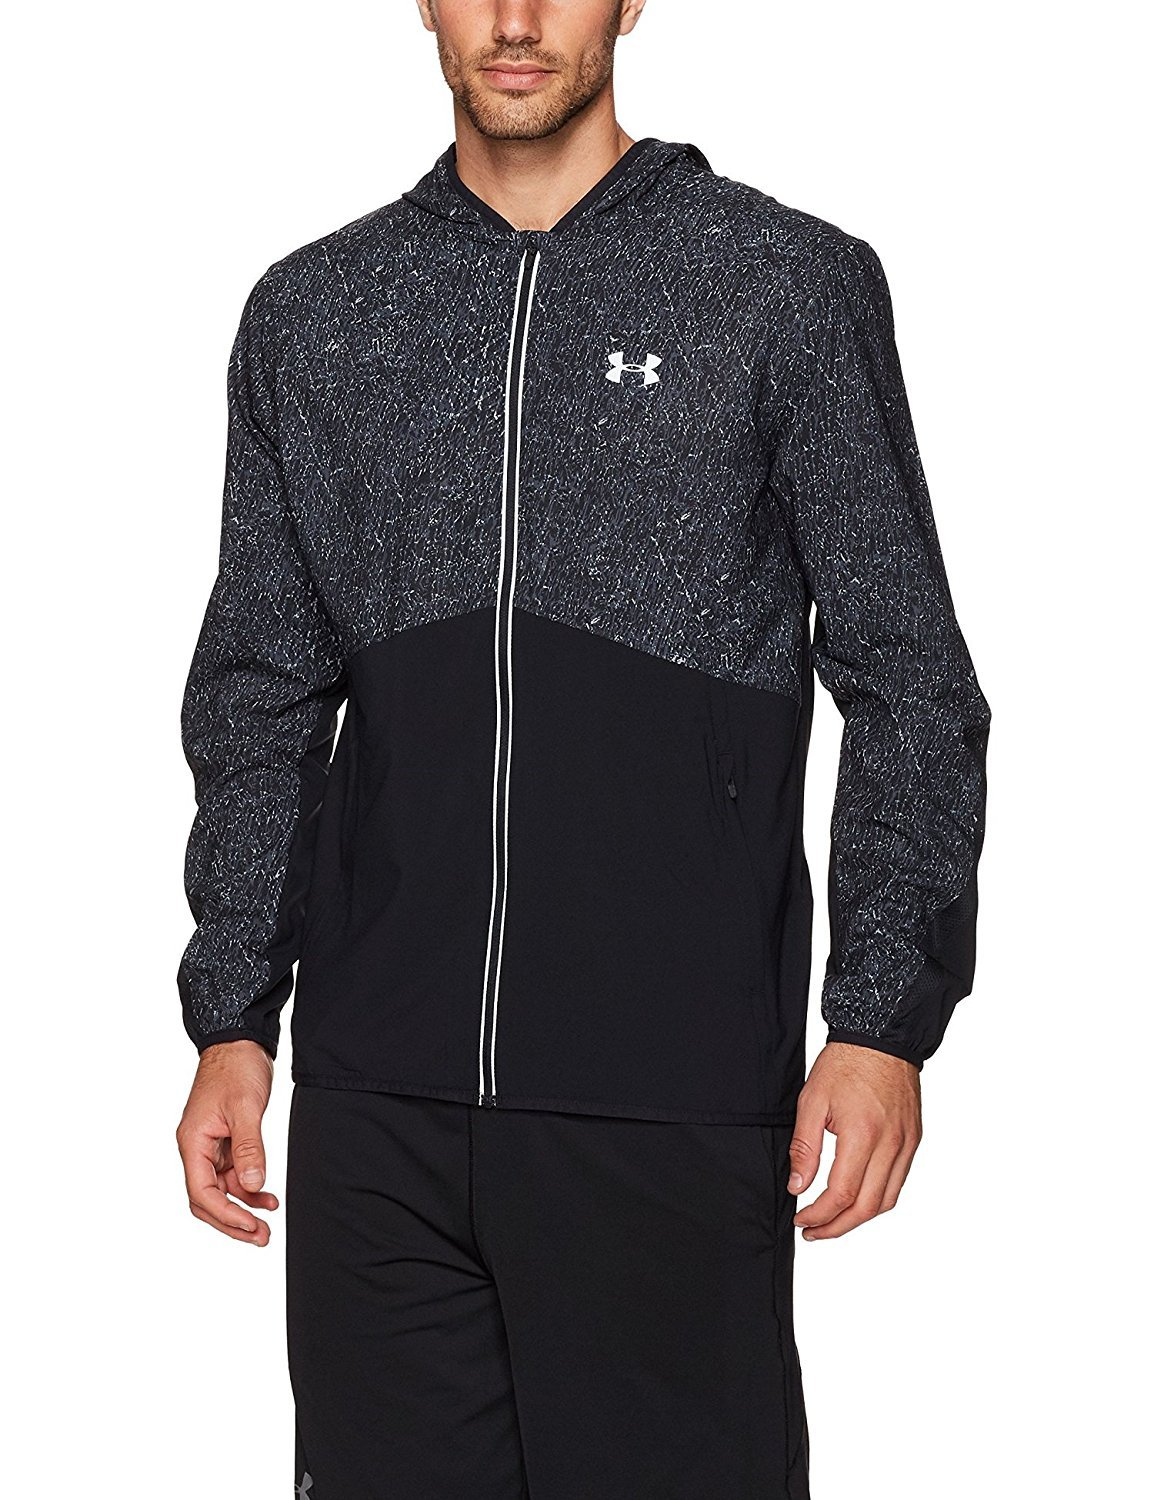 Under Armour Men's Run True Printed Jacket,Black (001)/Reflective, Medium by Under Armour (Image #1)